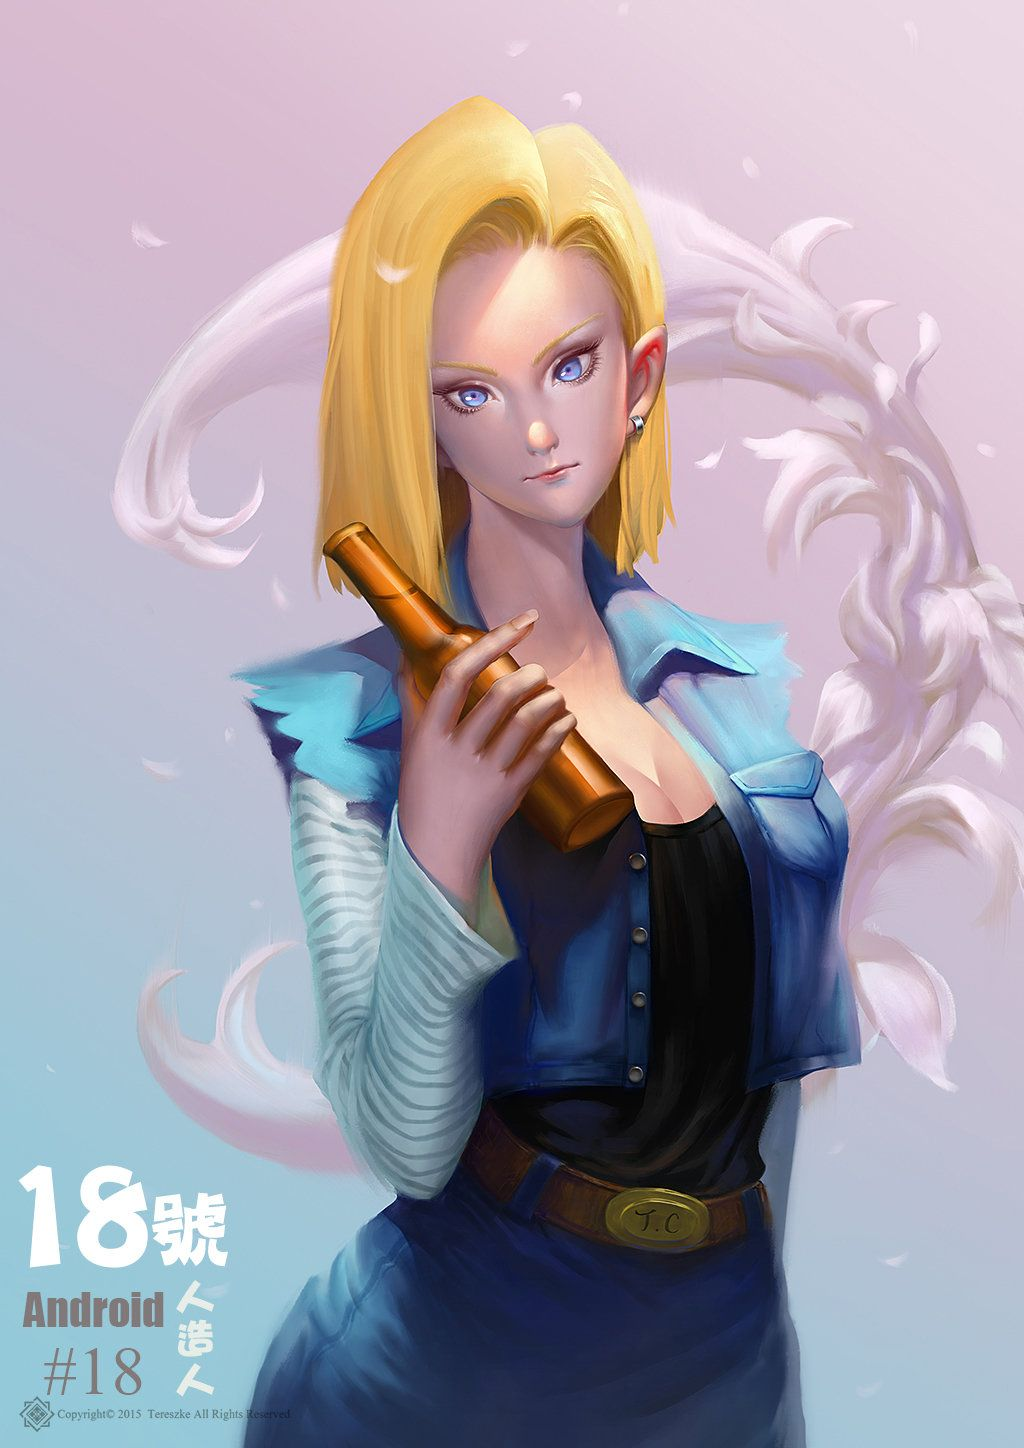 Pin By Holly Waldenmeyer On Dbz  Android 18, Android, Fan Art-4291